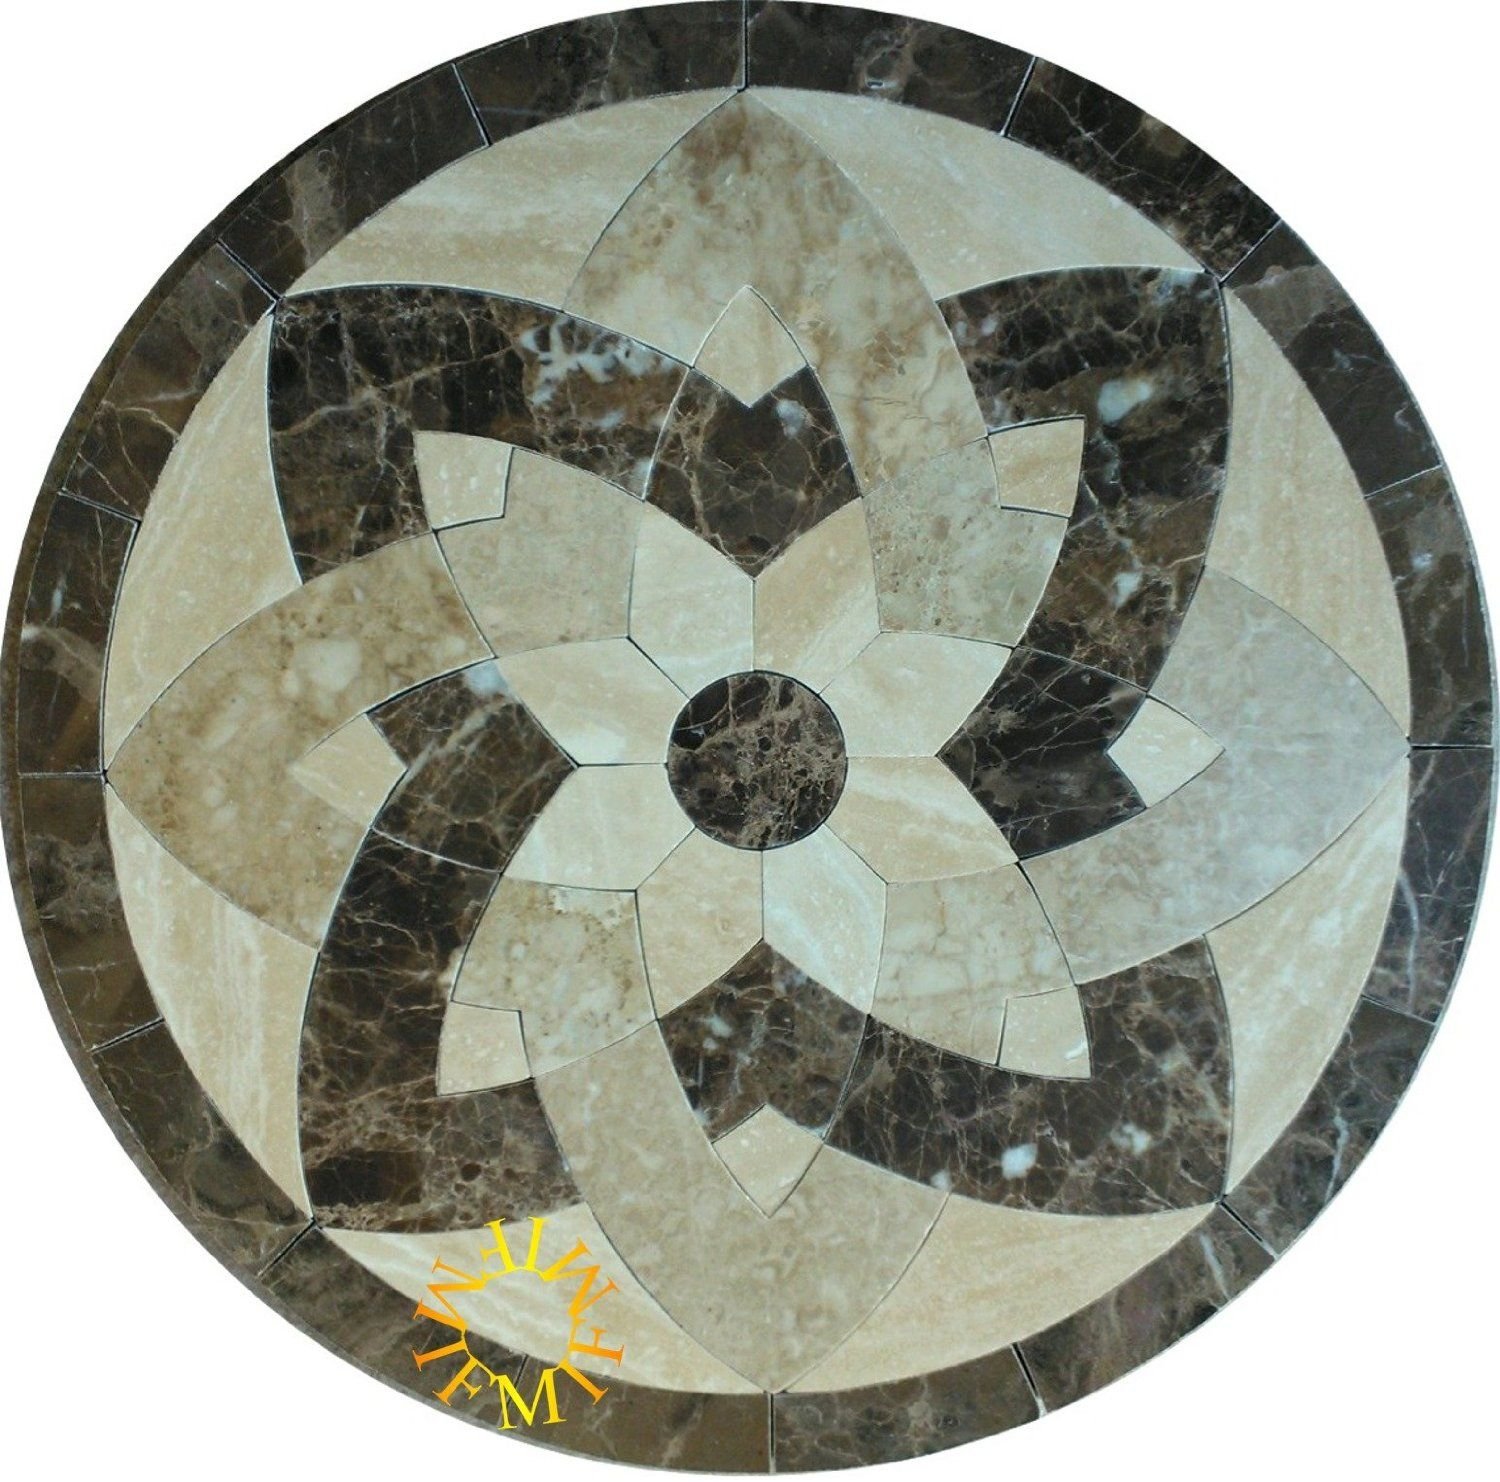 Floor marble medallion mosaic tile 60 inch amazon tile floor marble medallion mosaic tile 60 inch amazon dailygadgetfo Image collections